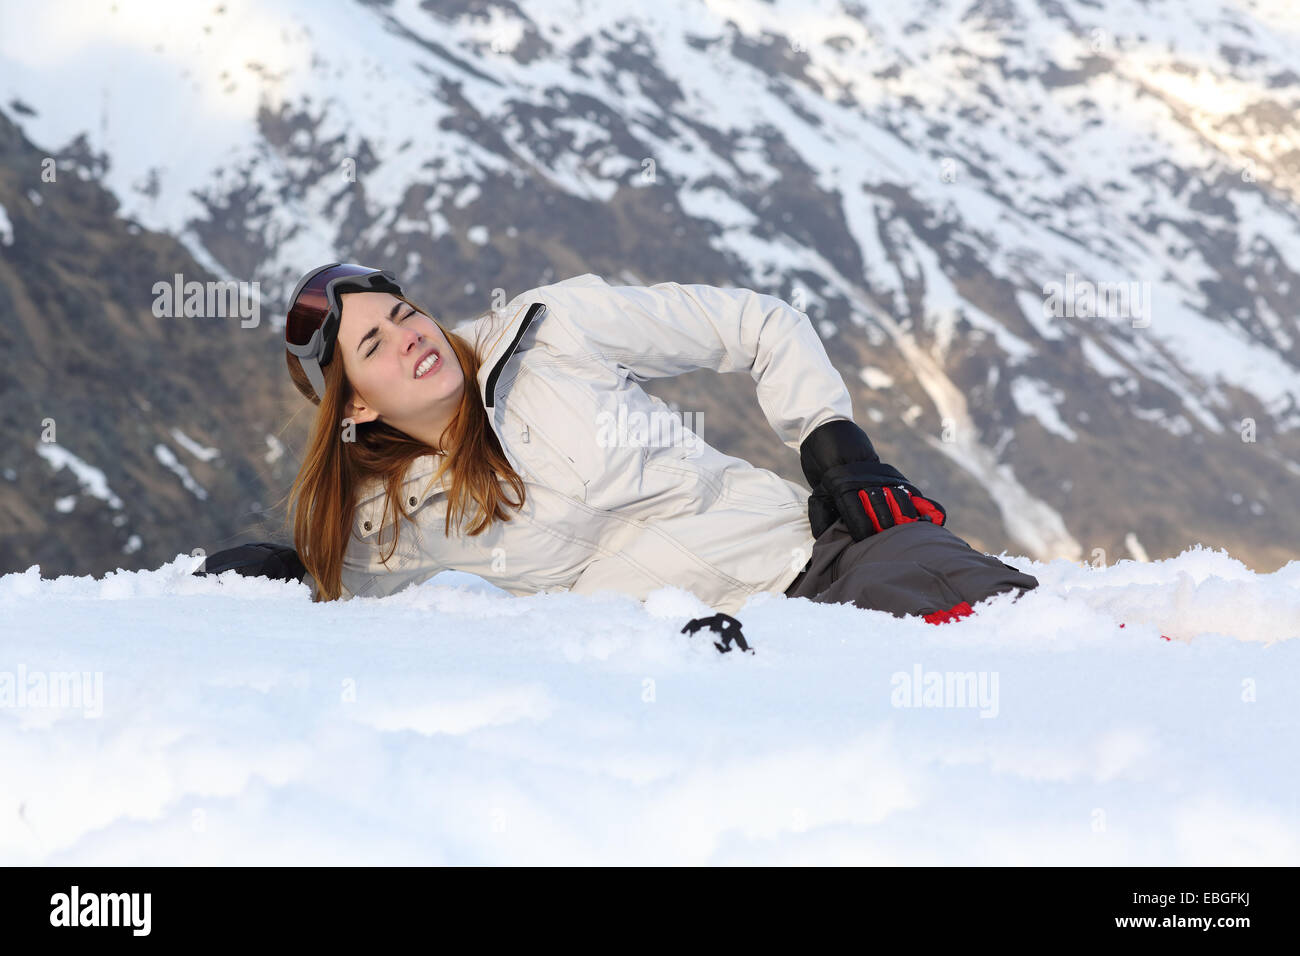 Skier woman hurt lying in the snow of a high mountain - Stock Image